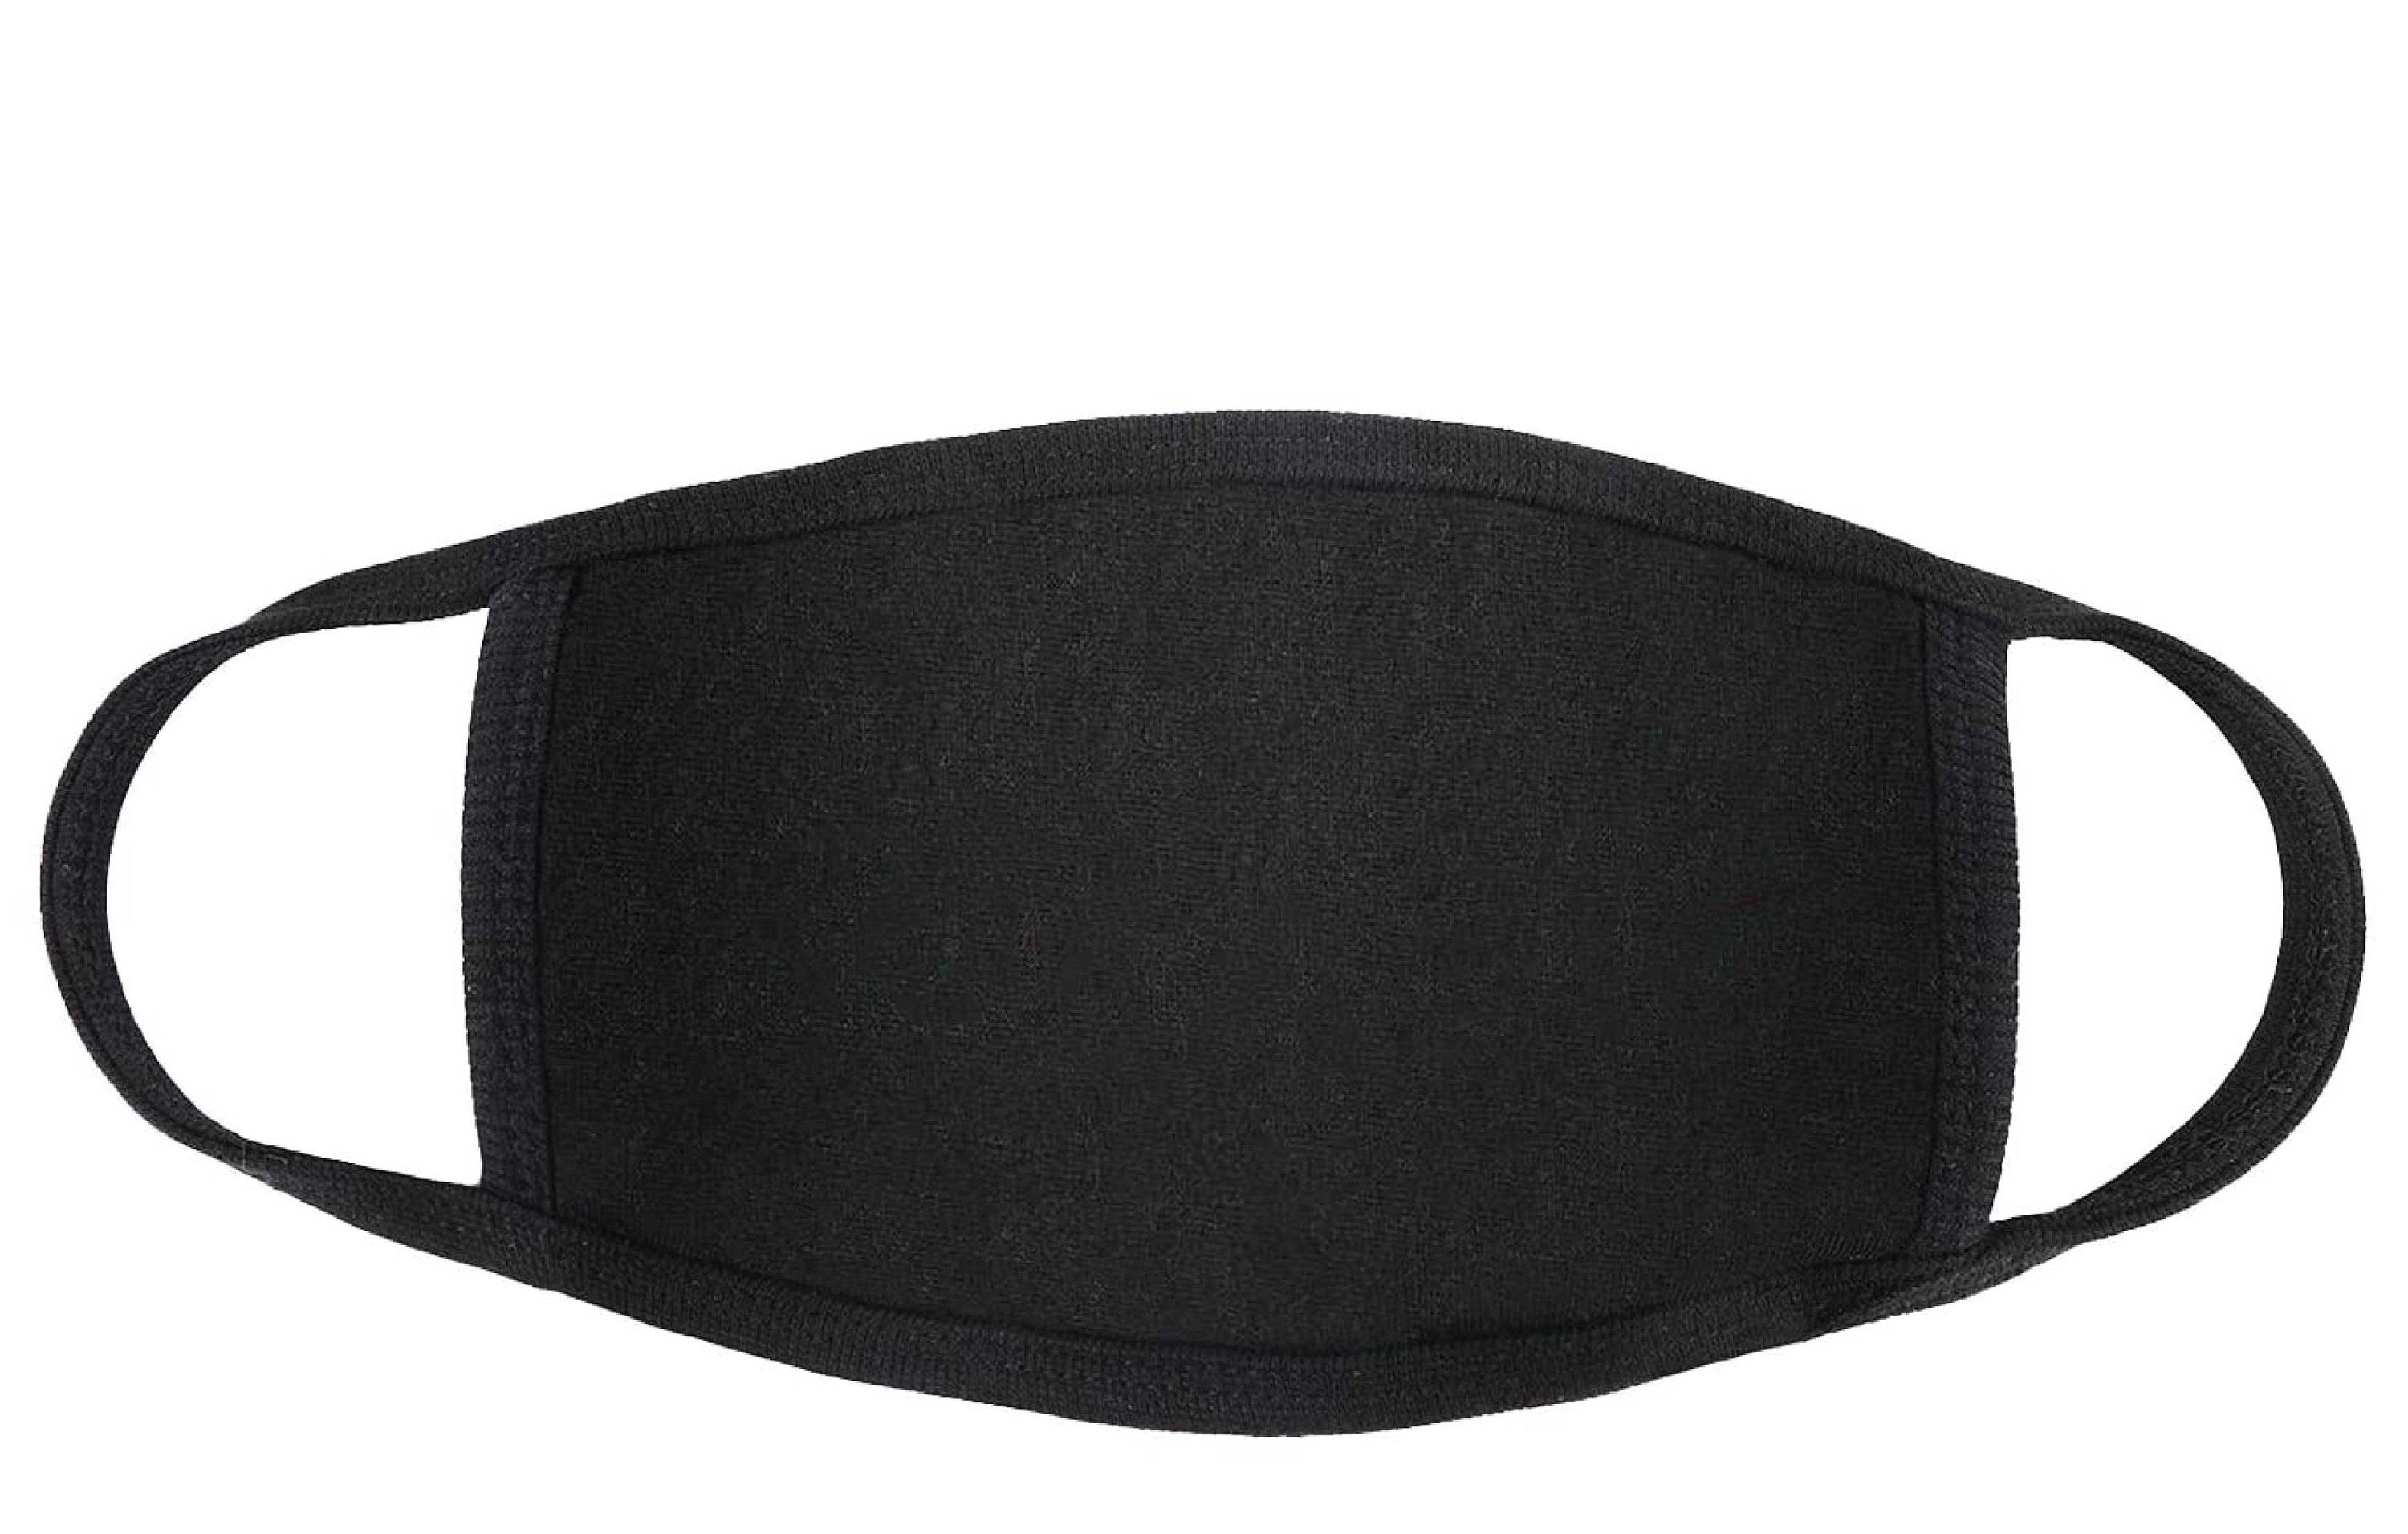 Black 100 Cotton 2 Ply Masks Made In Usa Bulk Pack Of 1 000